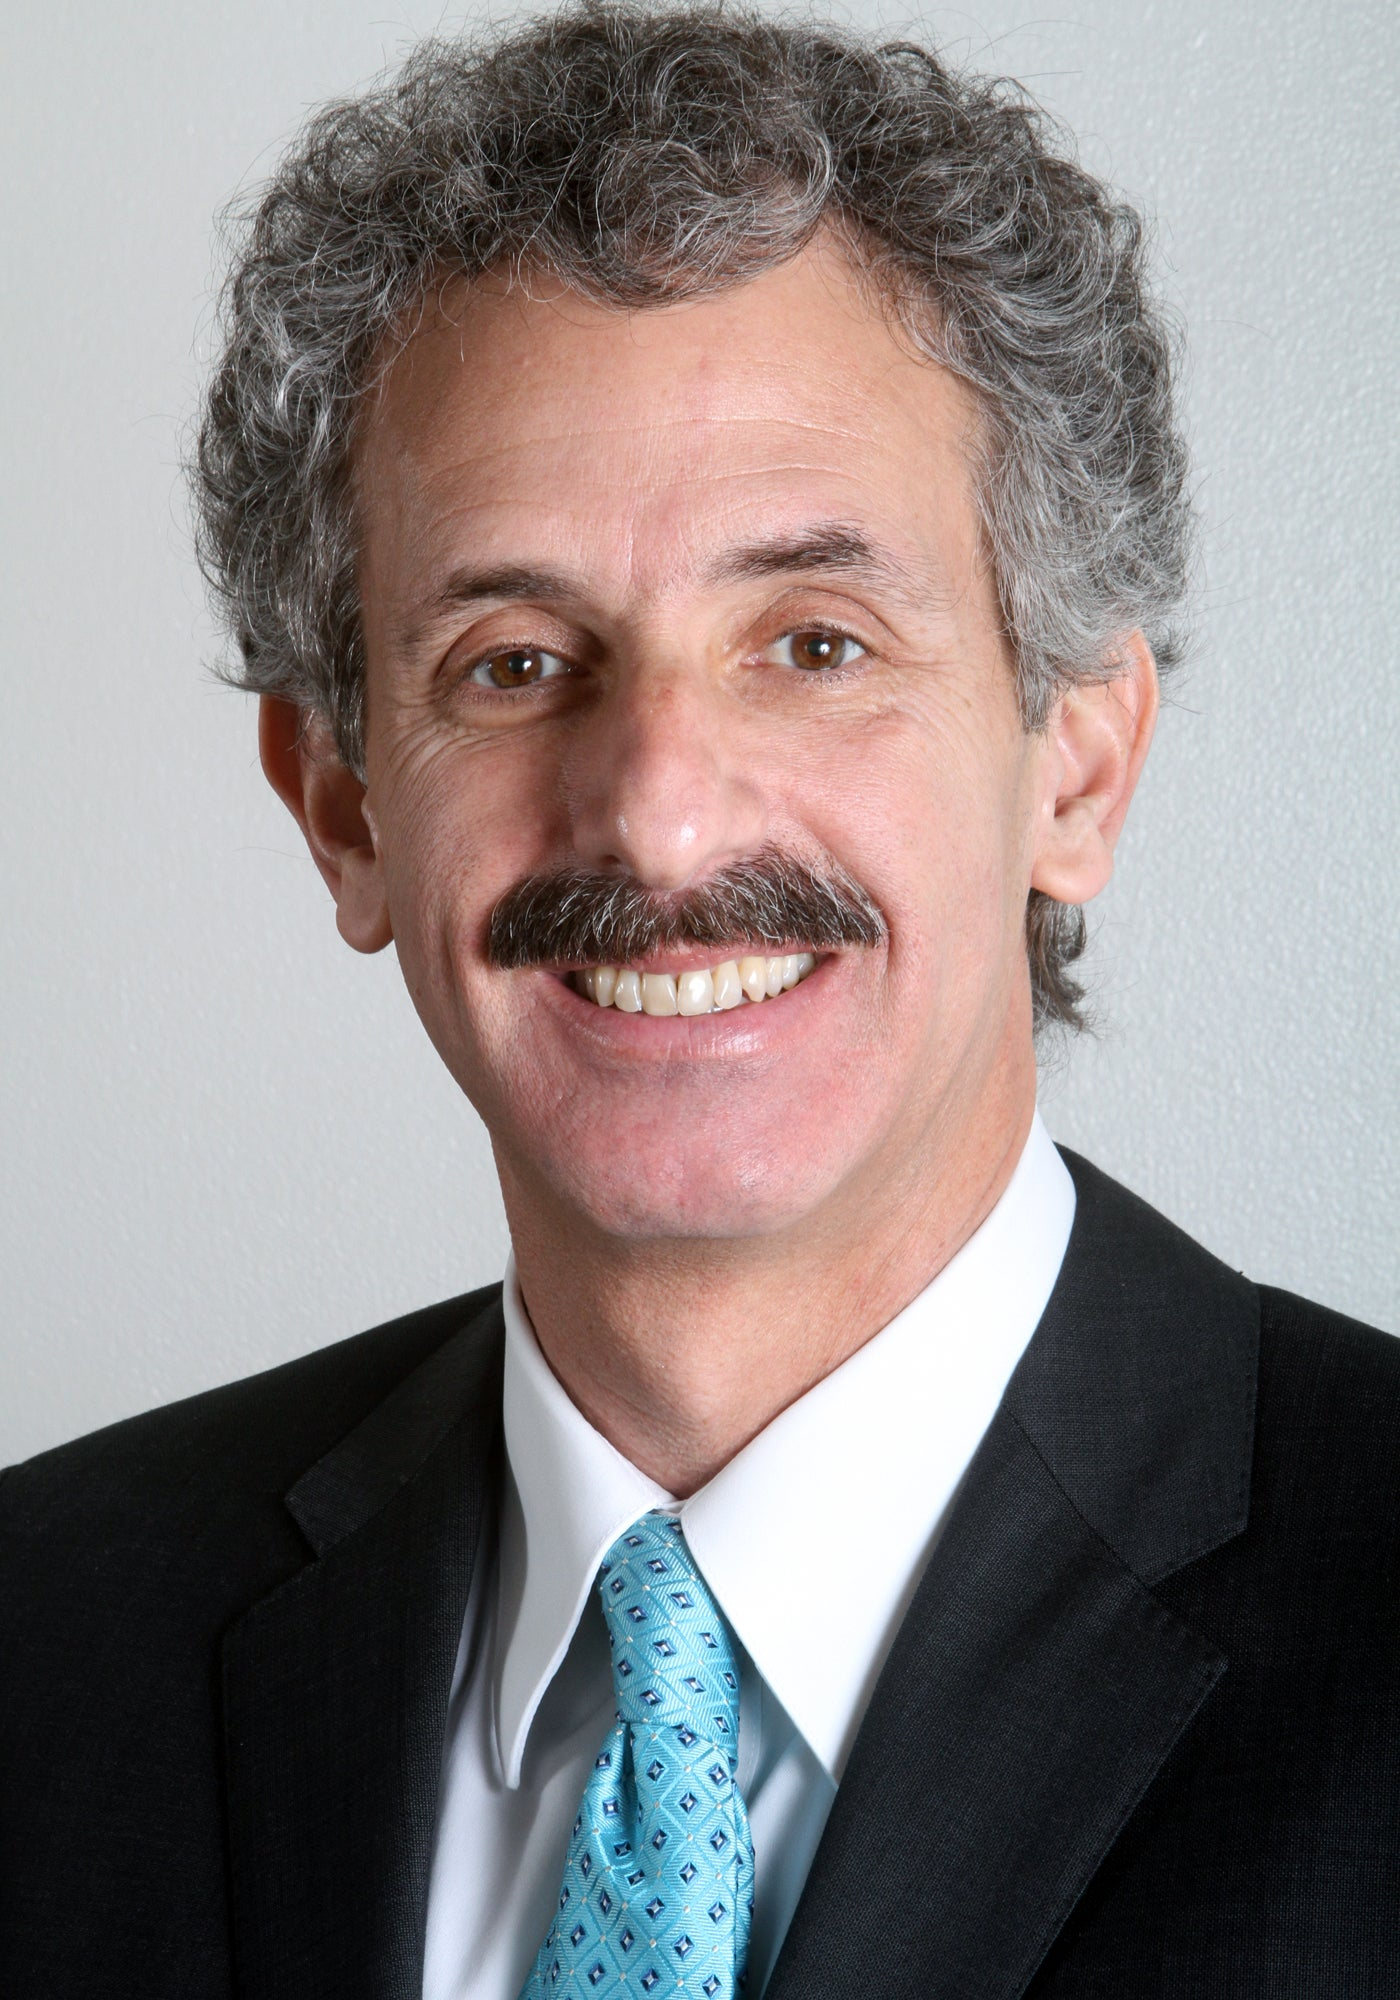 This L.A. City Attorney Is Taking Legal Action To Crack Down On White Supremacist Gang Activity